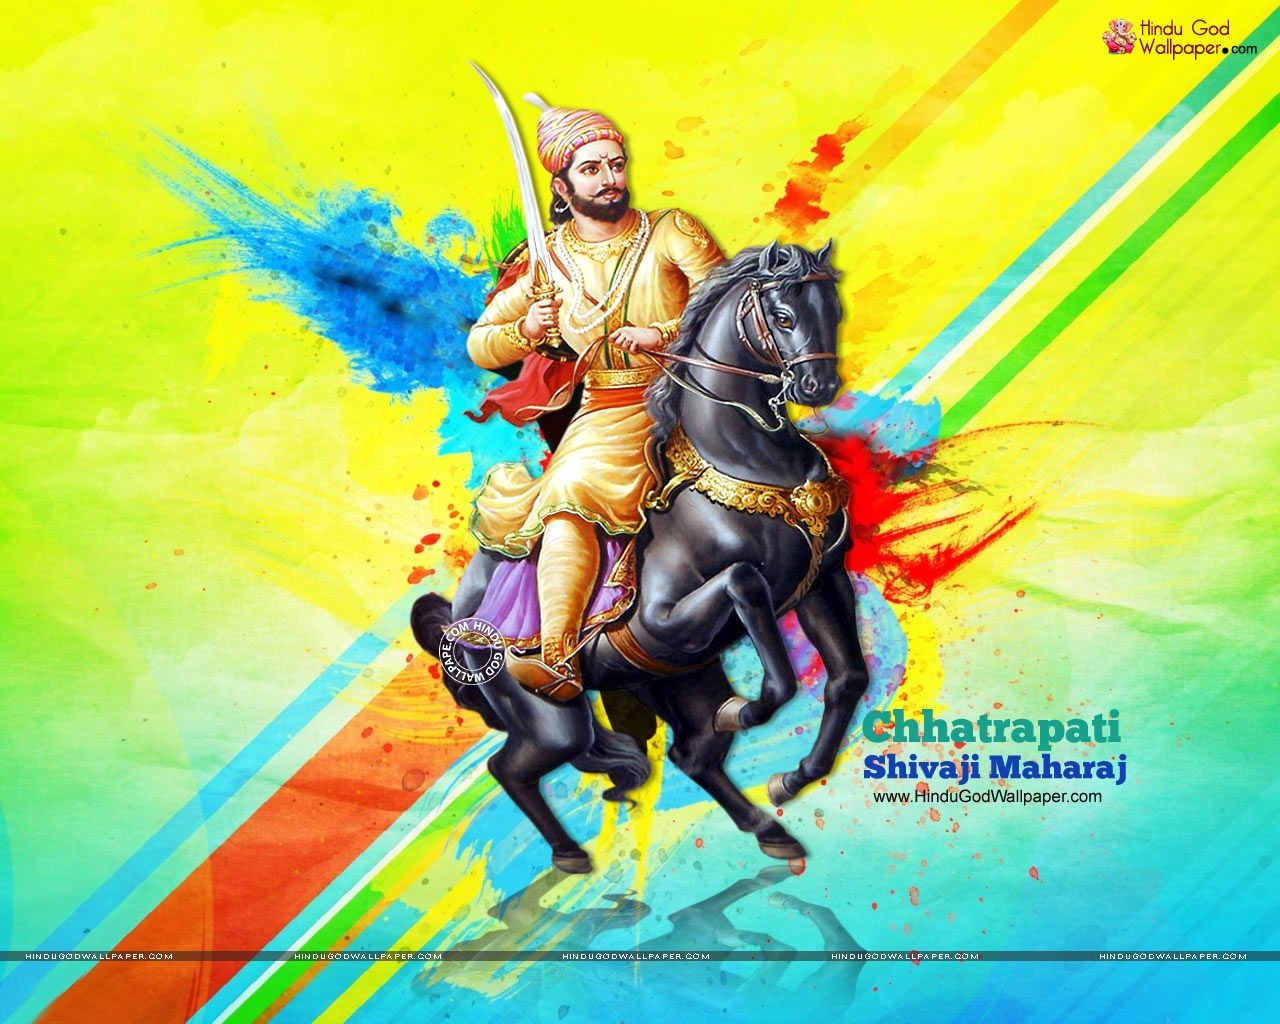 Hd wallpaper shivaji maharaj - Chhatrapati Shivaji Maharaj Wallpaper Free Download